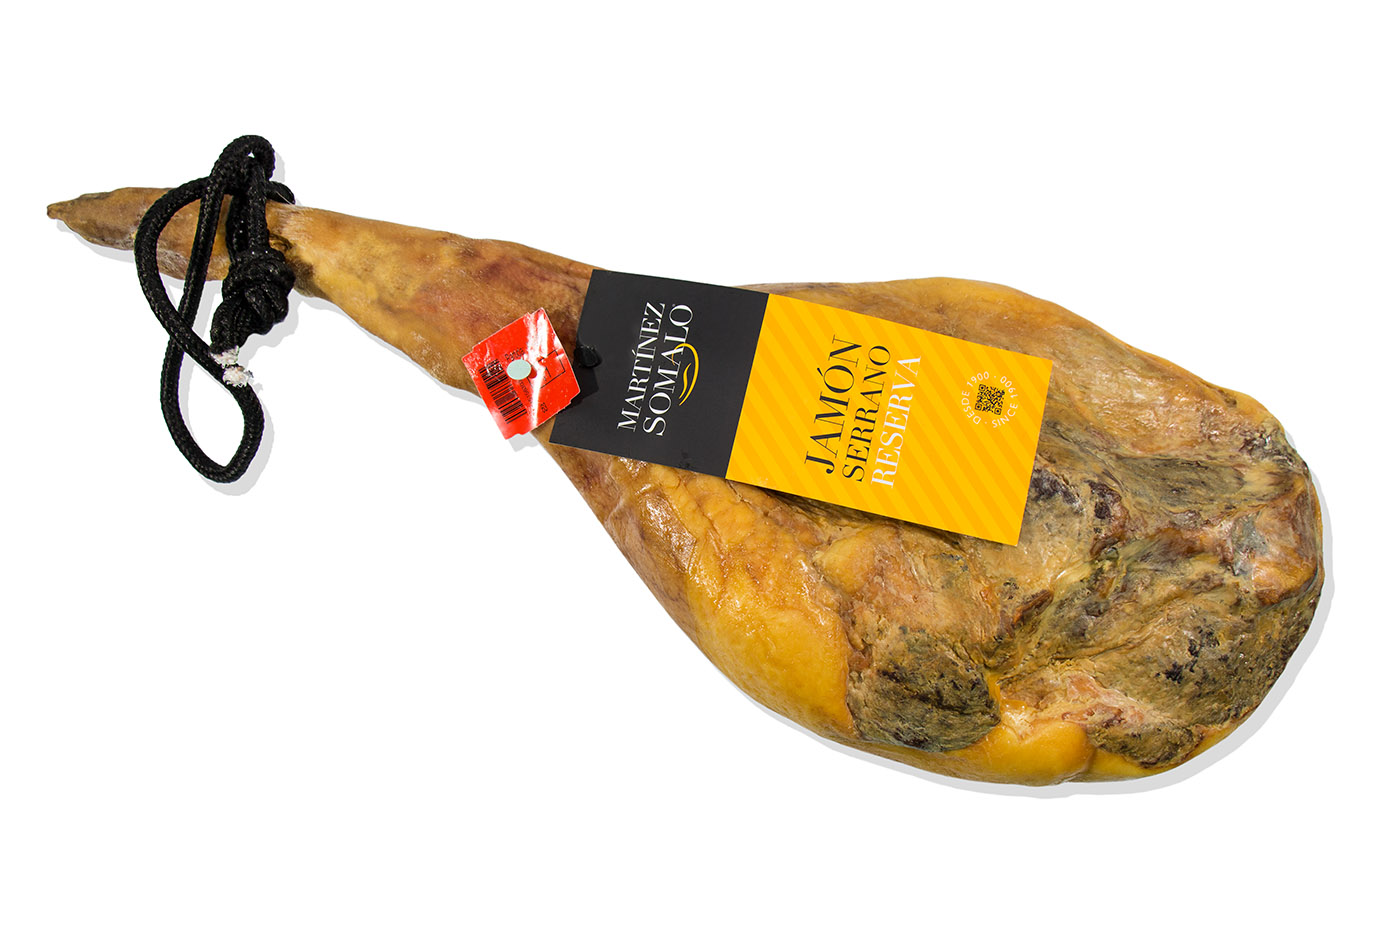 Click to enlarge image 4025_jamon_serrano_reserva_1.jpg